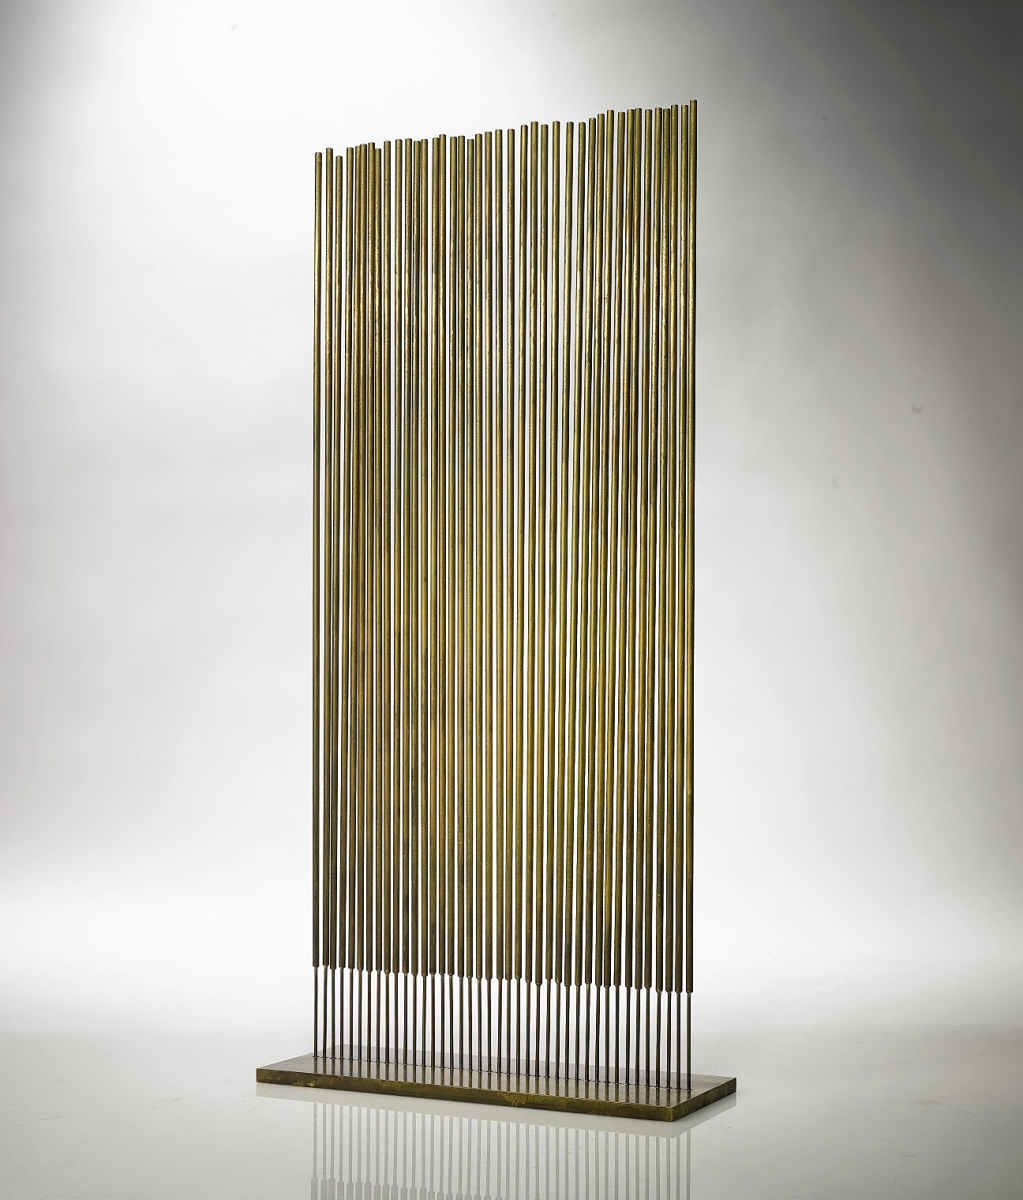 More than half of the works Lost City Arts exhibited were made by Harry Bertoia (1915-1978), including this untitled cattail sonambient from 1977 that was made from bronze, brass and copper and stood 33-  inches tall. New York City.